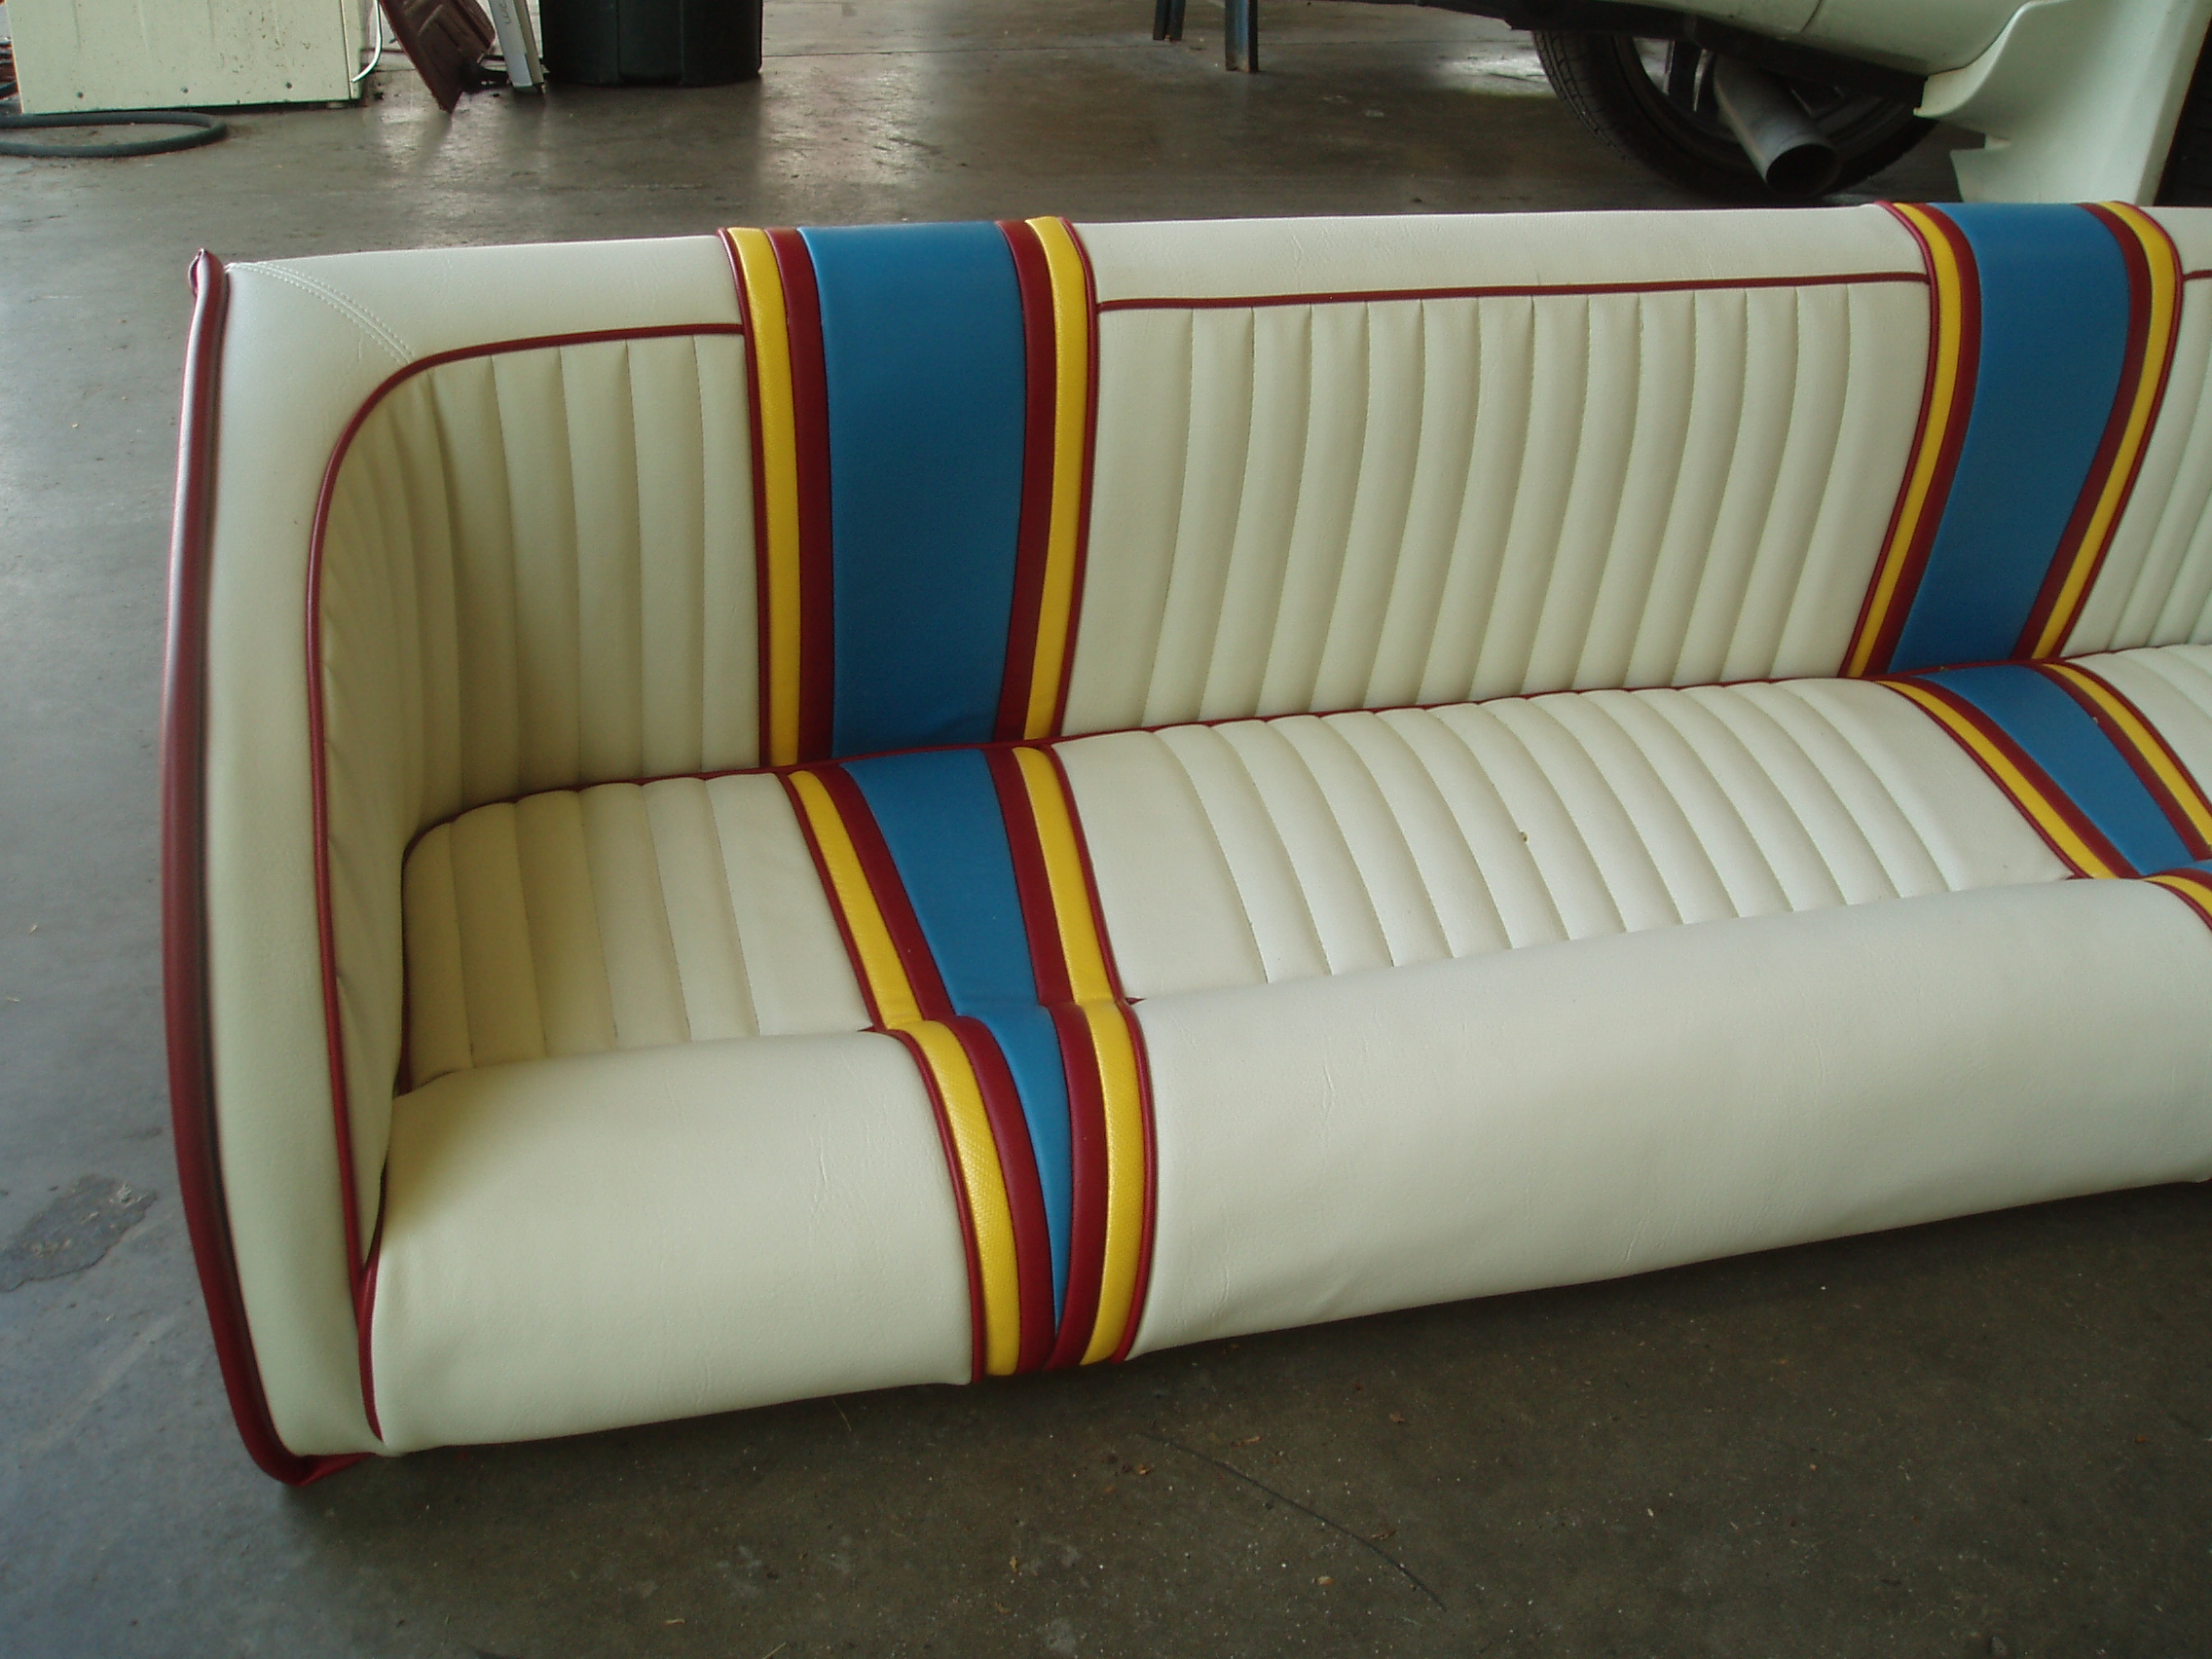 Auto Upholstery Me S Auto Upholstery Coupons Me In Chesapeake 100 Auto Upholstery Supplies Me